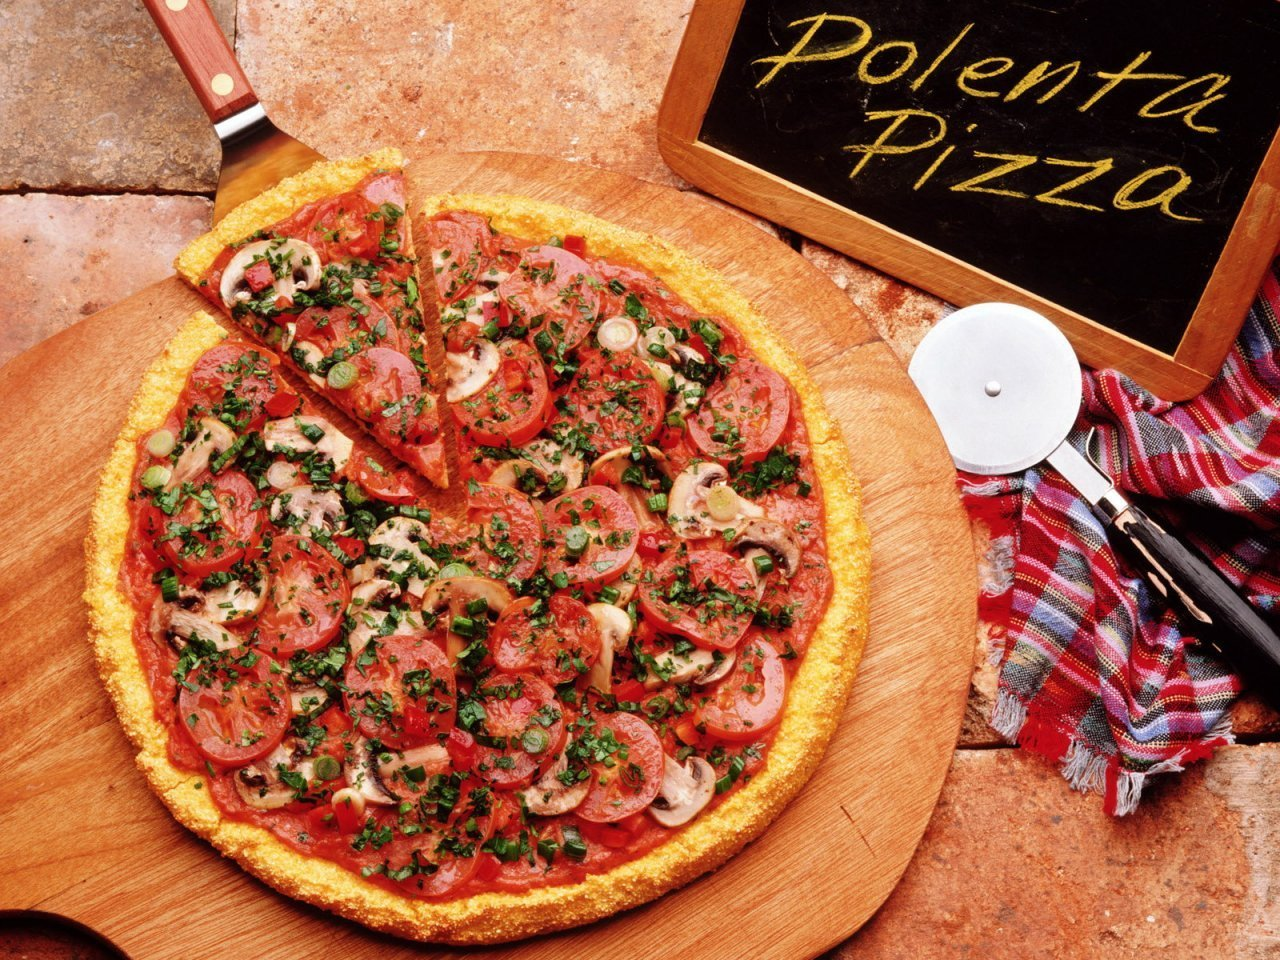 Pizza Images HD Wallpaper And Background Photos